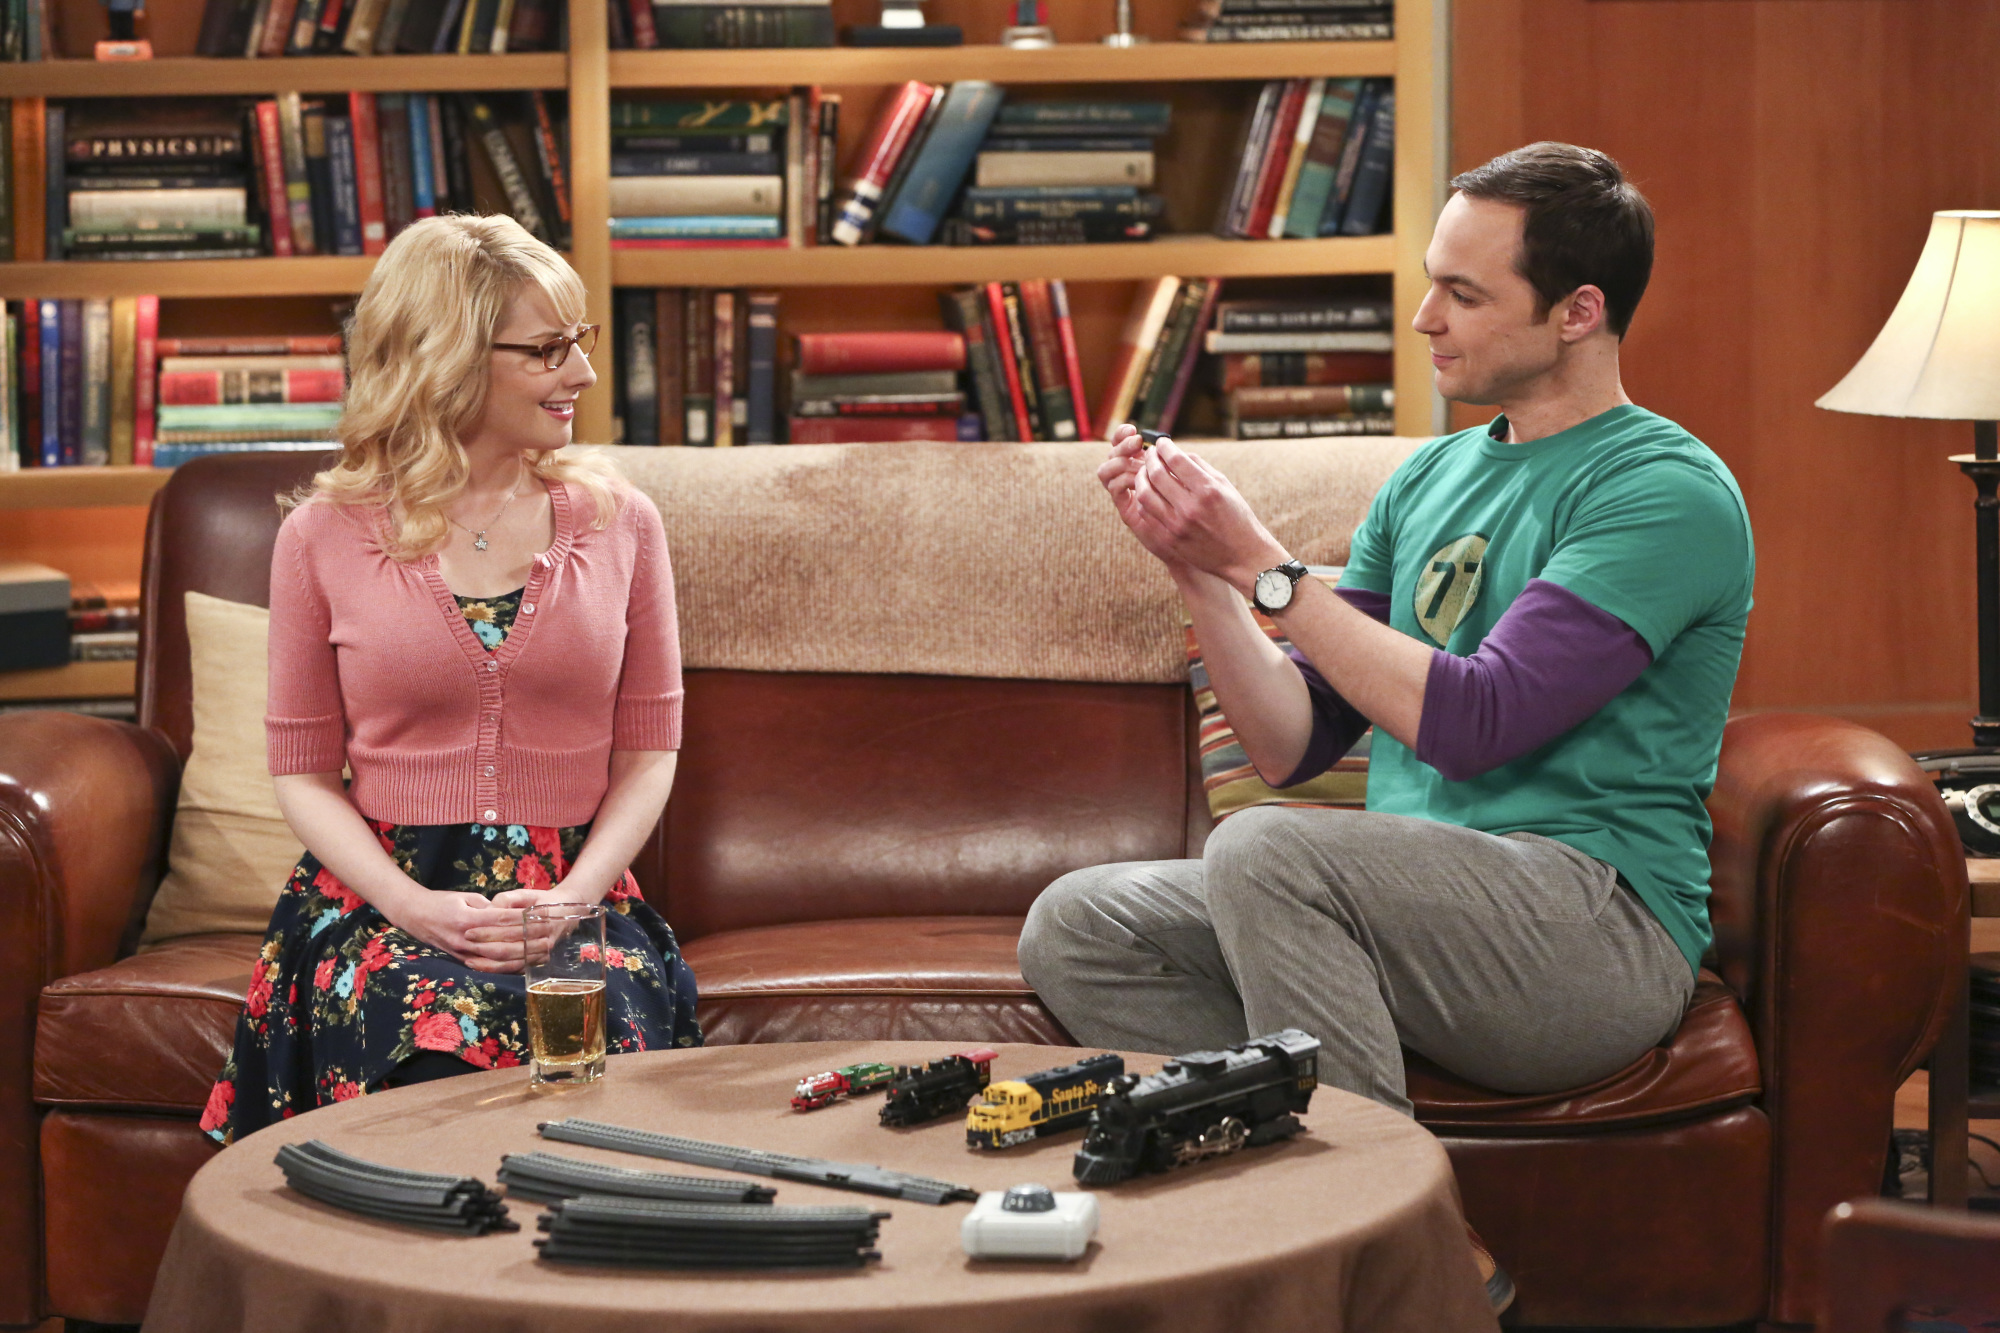 Sheldon shows off his trains to Bernadette.